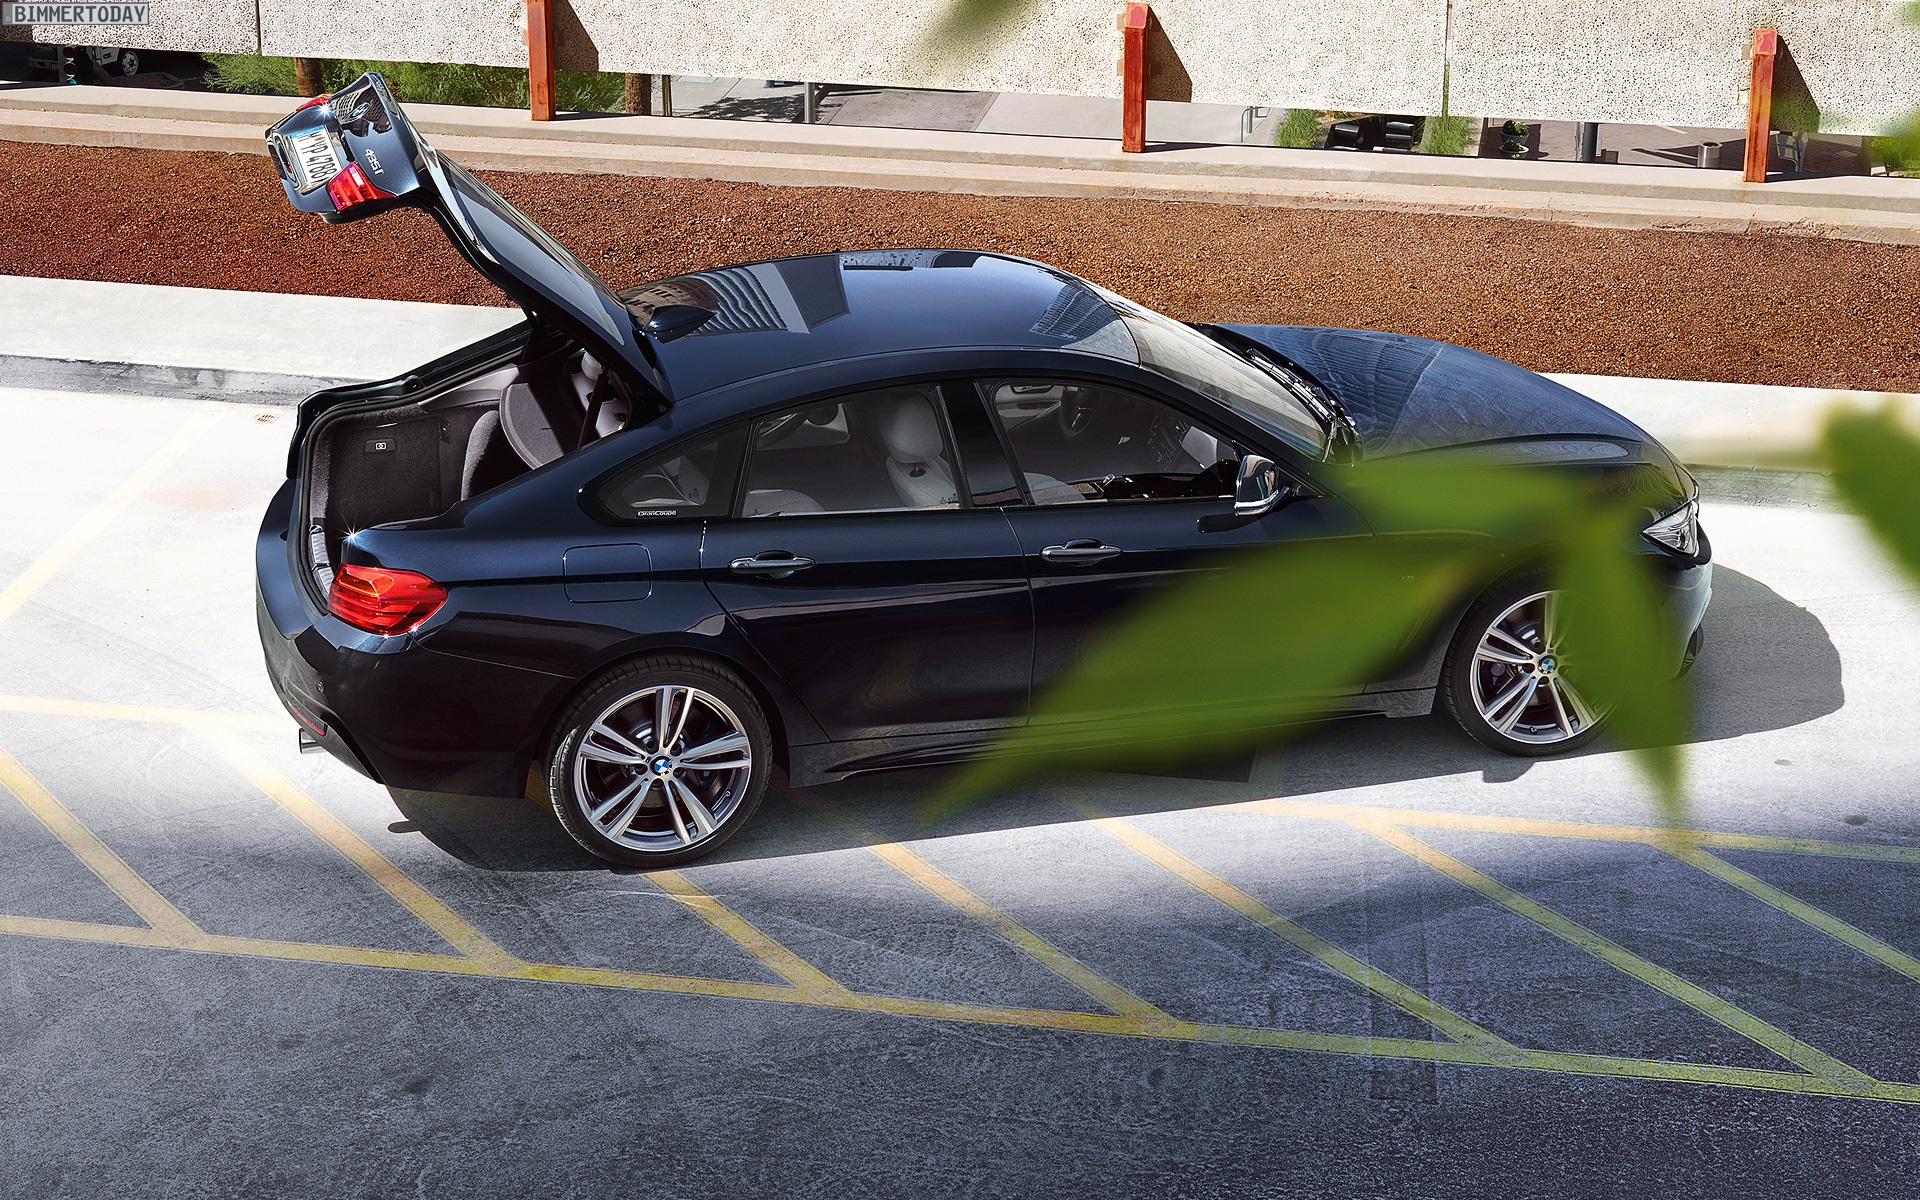 Bmw 4er gran coup wallpaper mit 435i m sportpaket in for Bmw 4er gran coupe m paket